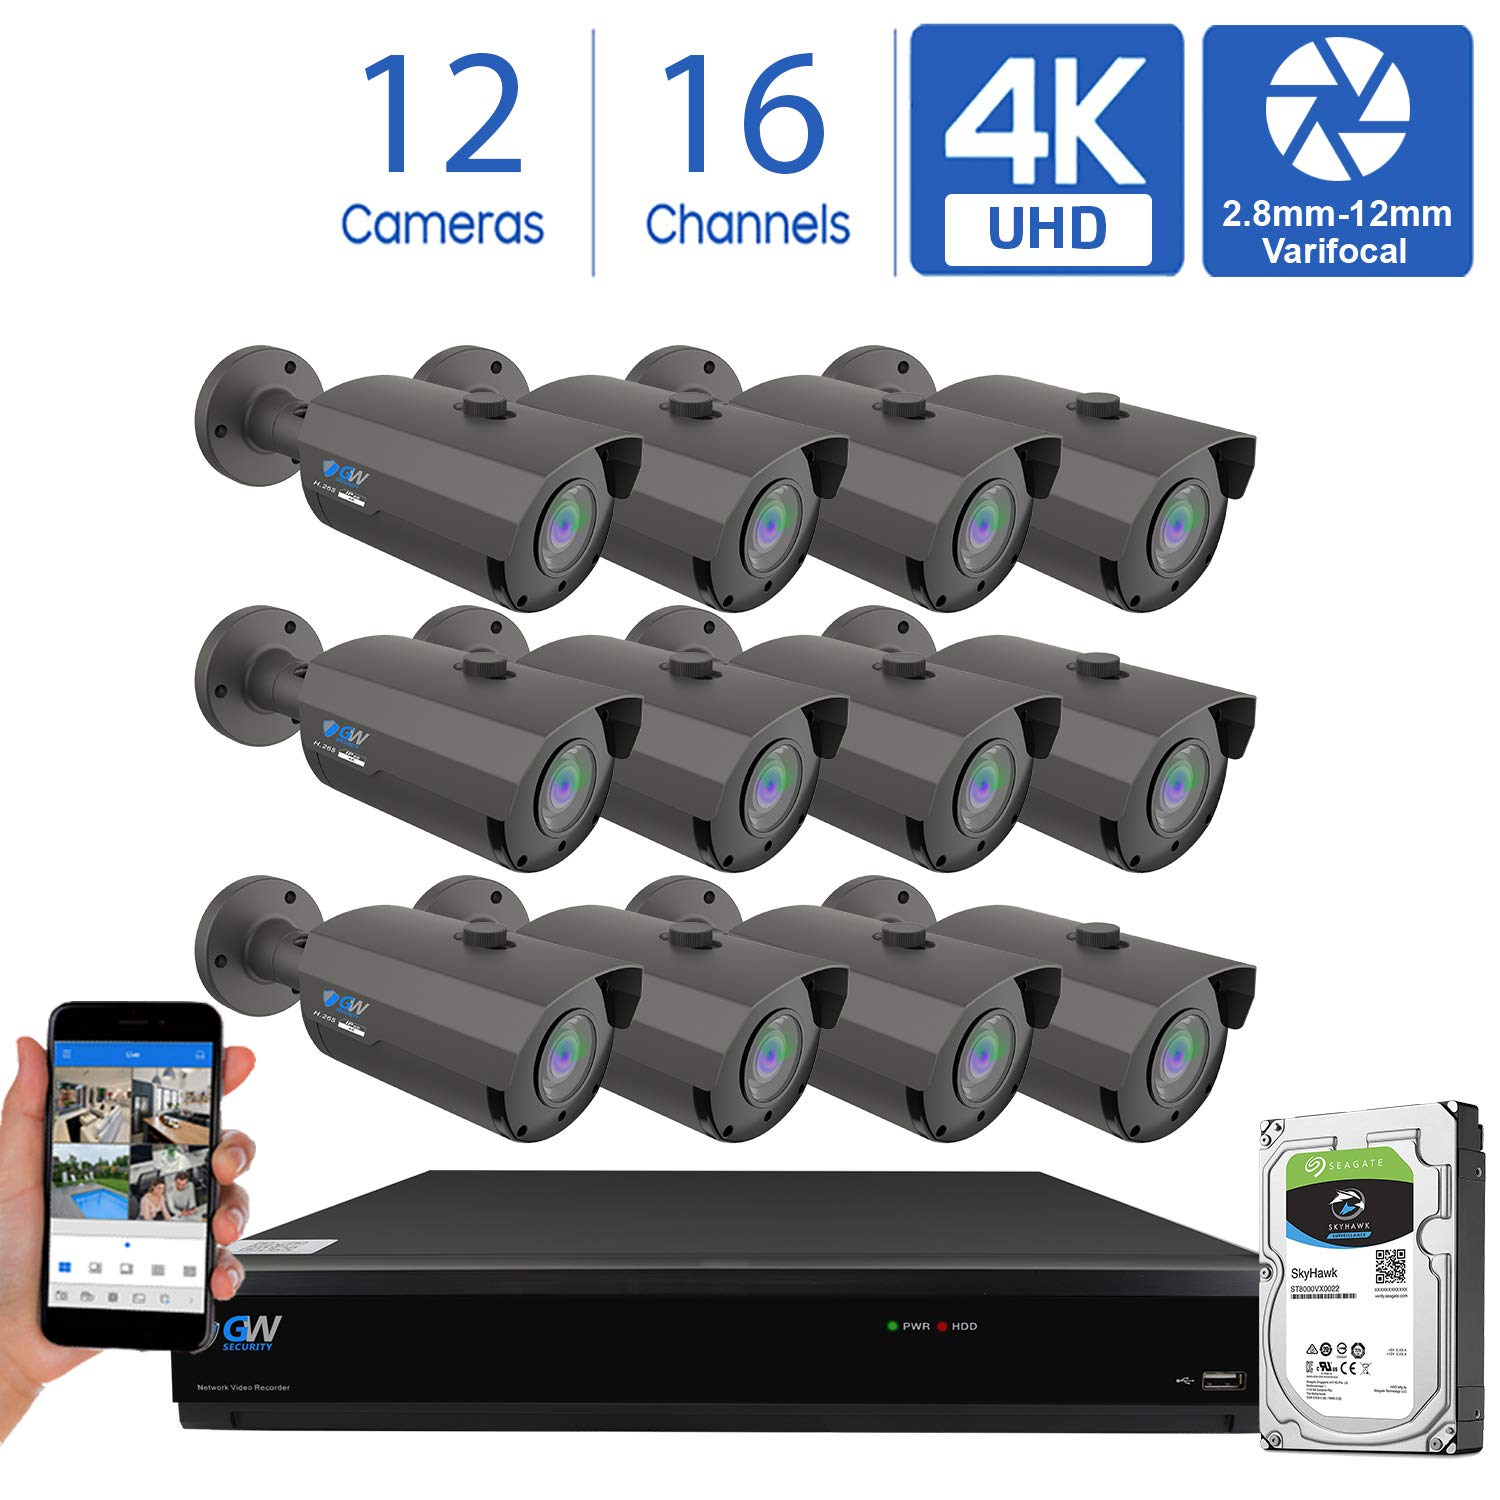 GW 16 Channel 4K H.265 CCTV DVR Security Camera System with 12 x UHD 8MP 2.8-12mm Varifocal Zoom 4K Bullet Surveillance Cameras and 4TB HDD, Free Remote View, Motion Alert with Snapshot